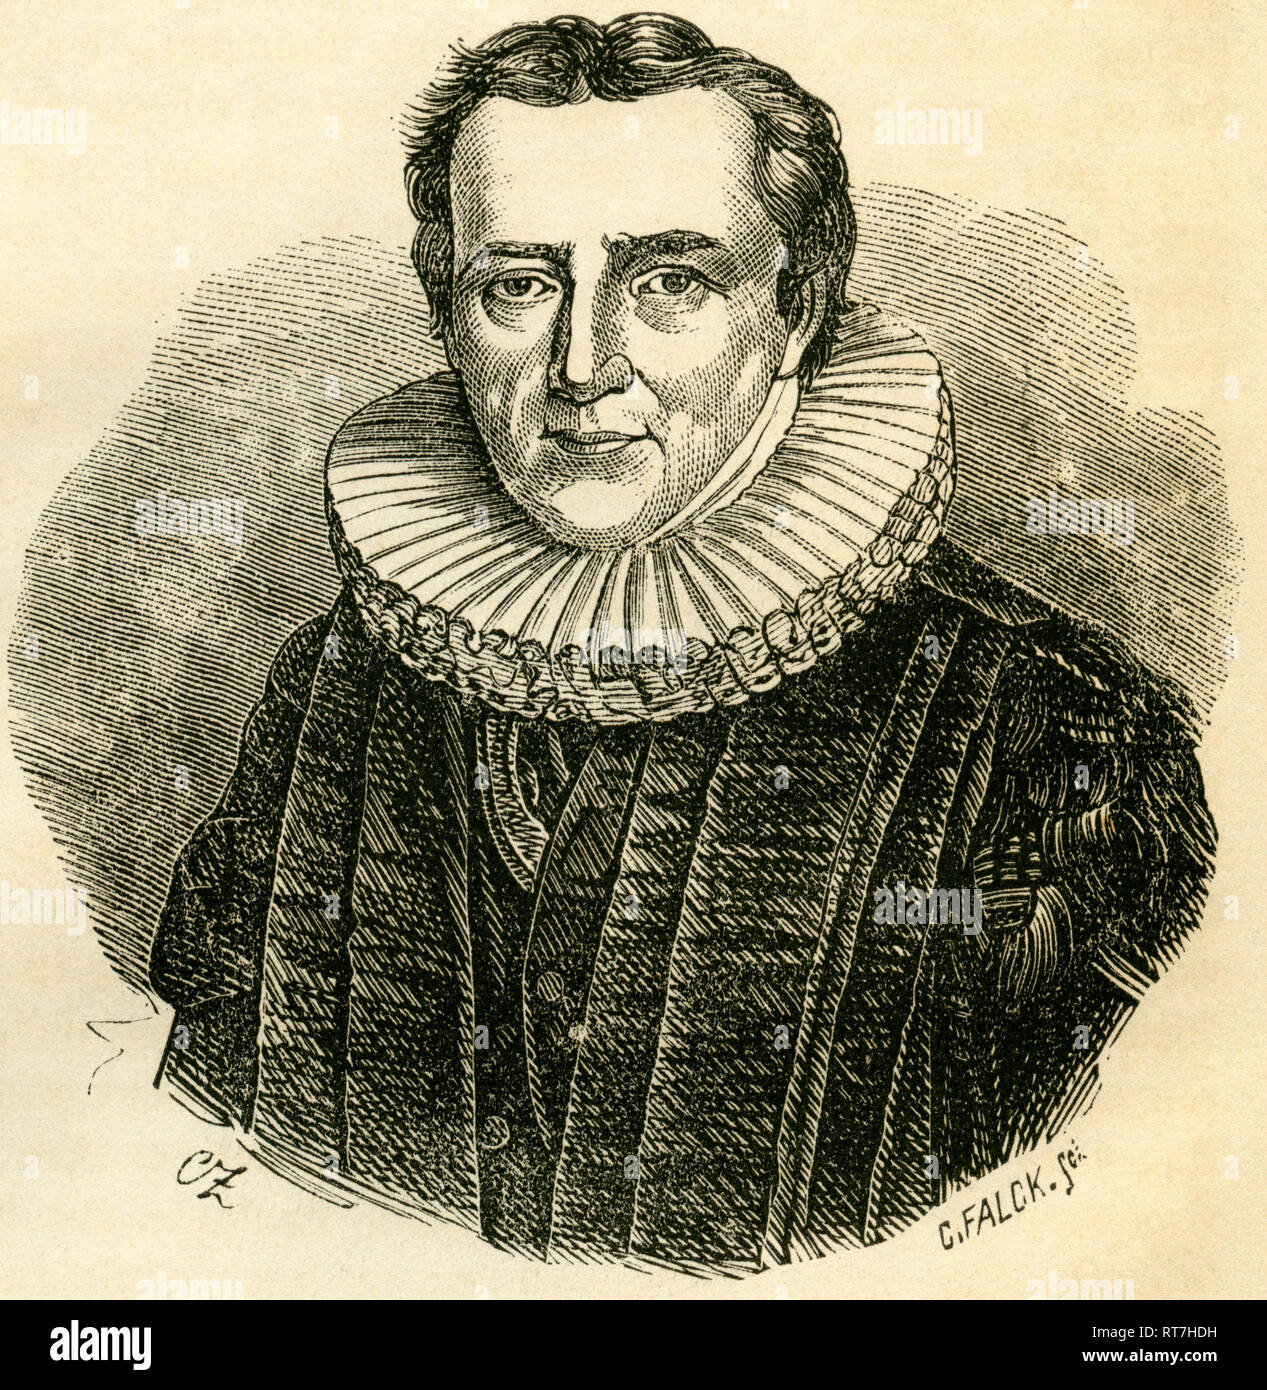 Abendroth, Amandus August (Augustus), 1767-1842, Herman jurist and politician, mayor of Hamburg, illustration from: 'Geschichte der Stadt Hamburg', (history of Hamburg), by Dr. J.G. Gallois, published by Ackermann and Wulff, Hamburg, 1866., Additional-Rights-Clearance-Info-Not-Available - Stock Image